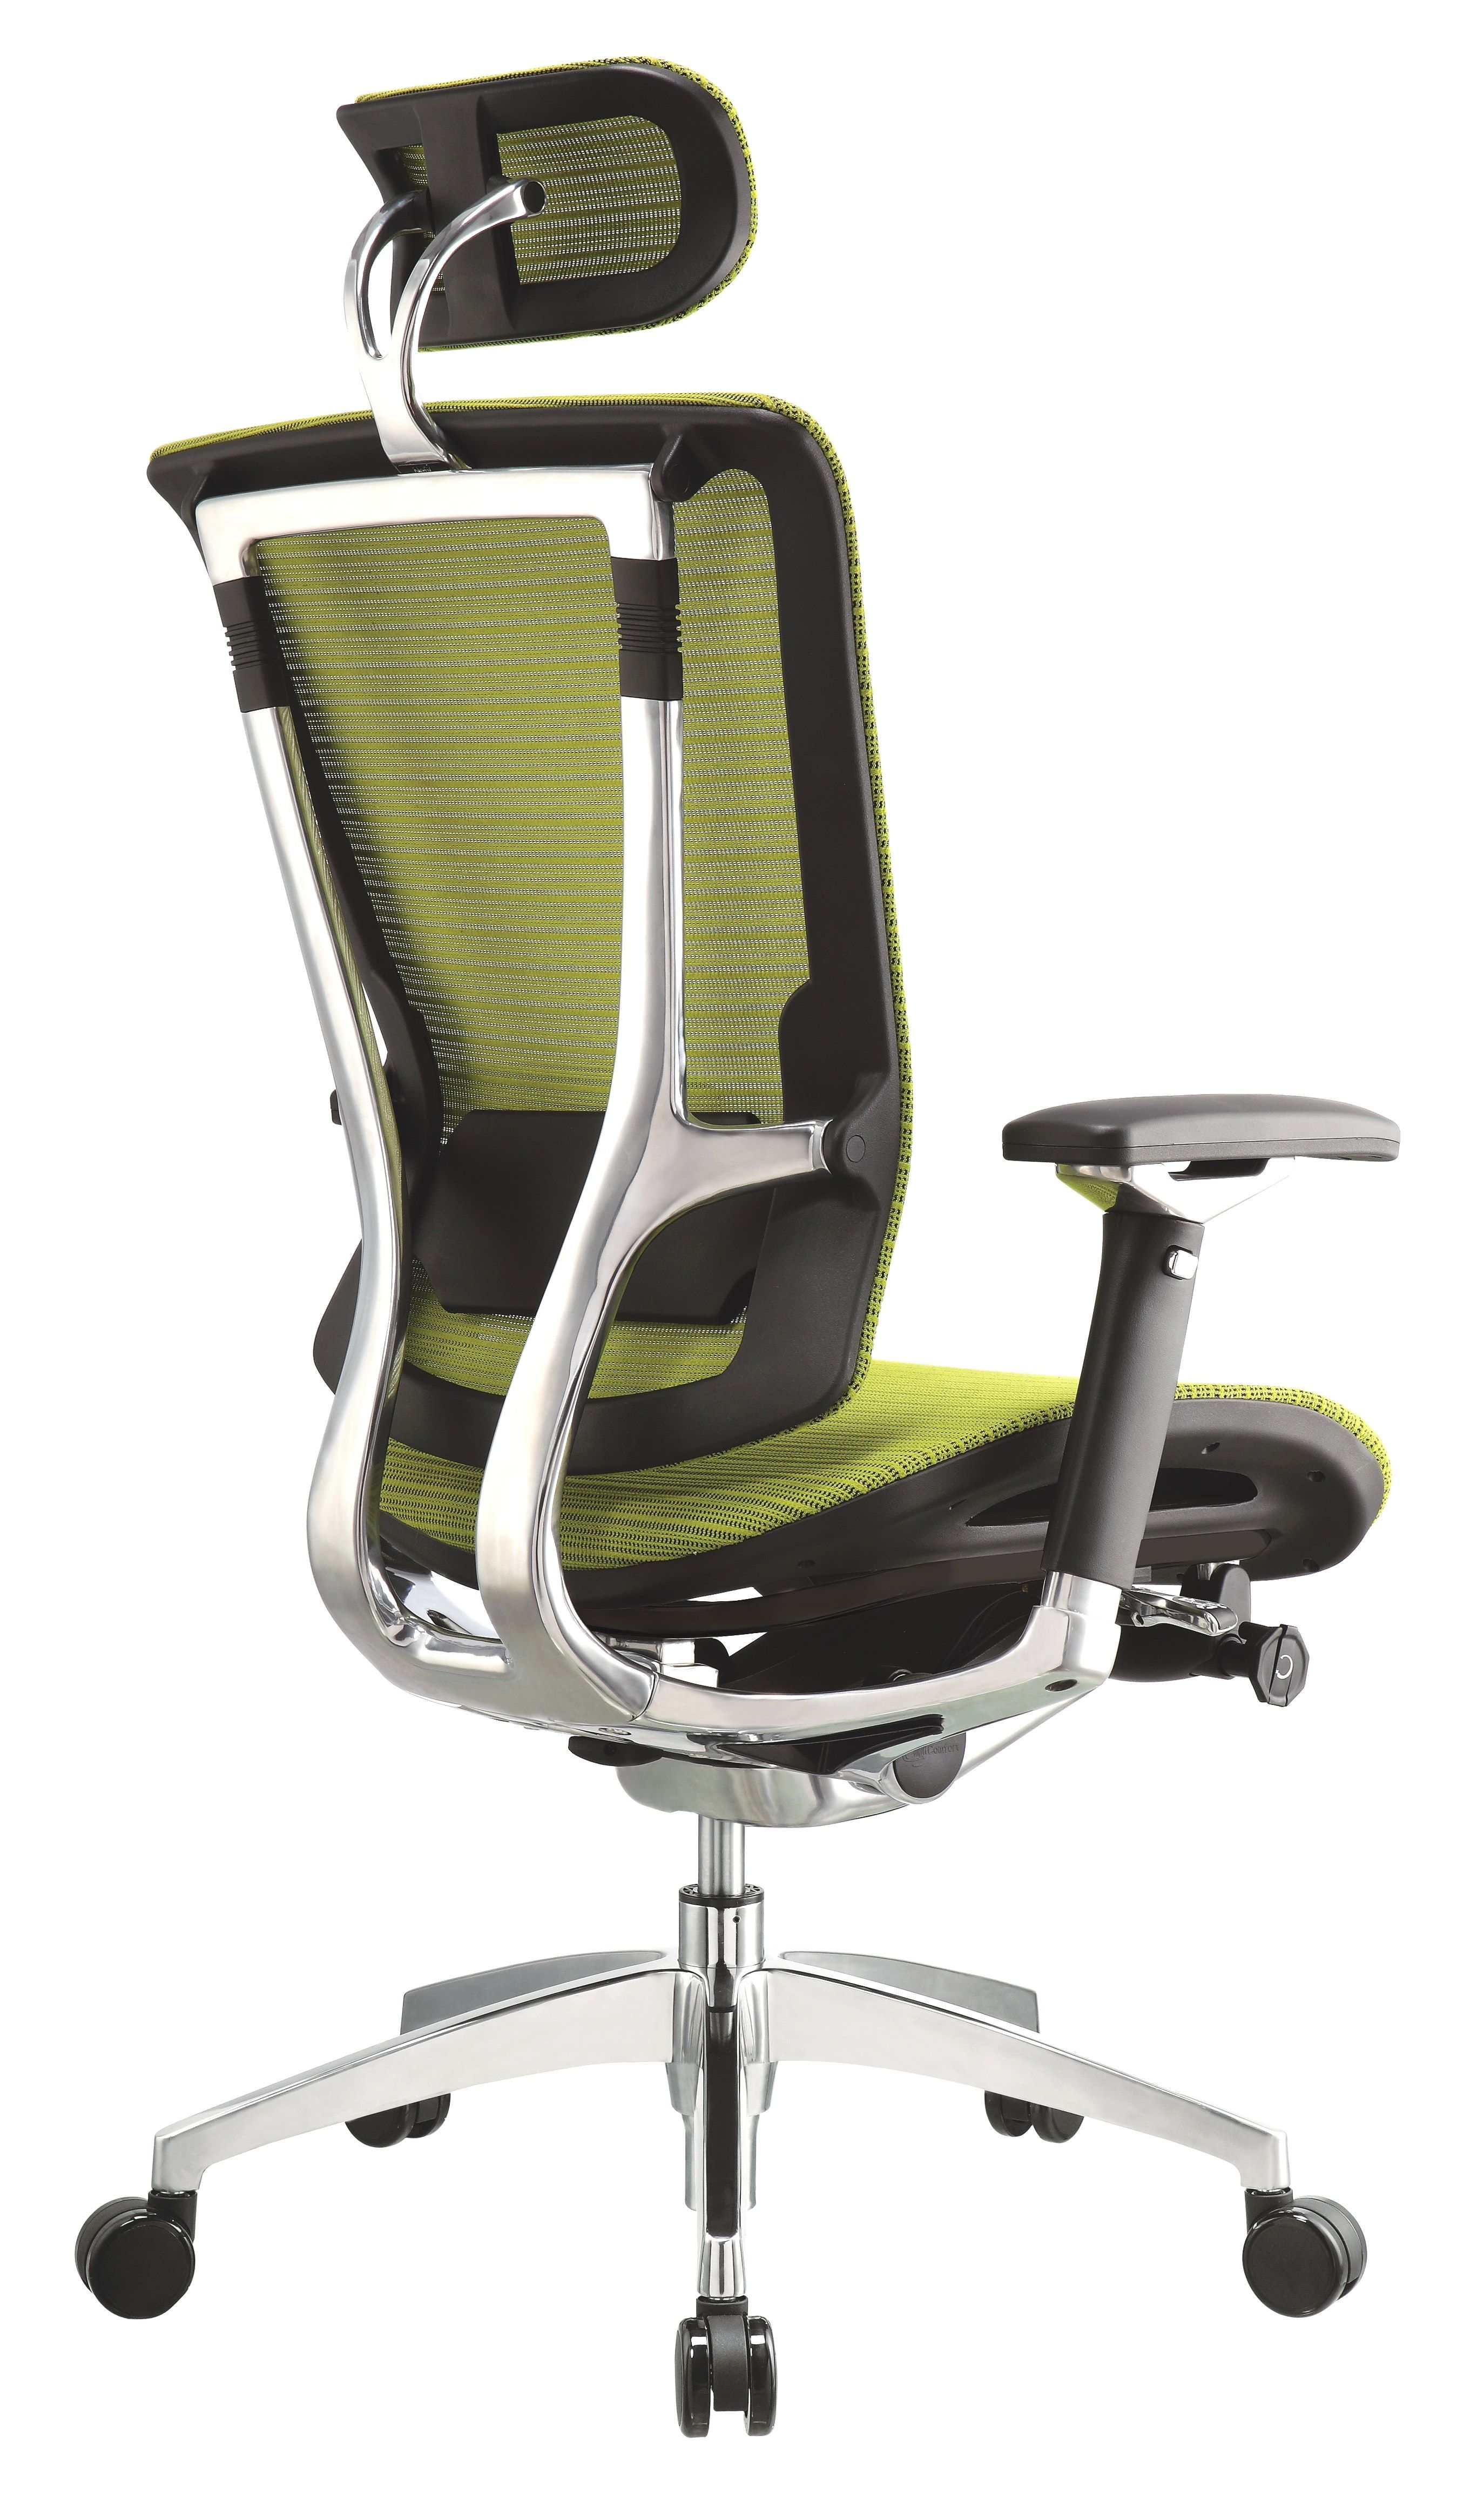 Good Office Chair For Long Hours Ergonomicofficechairs